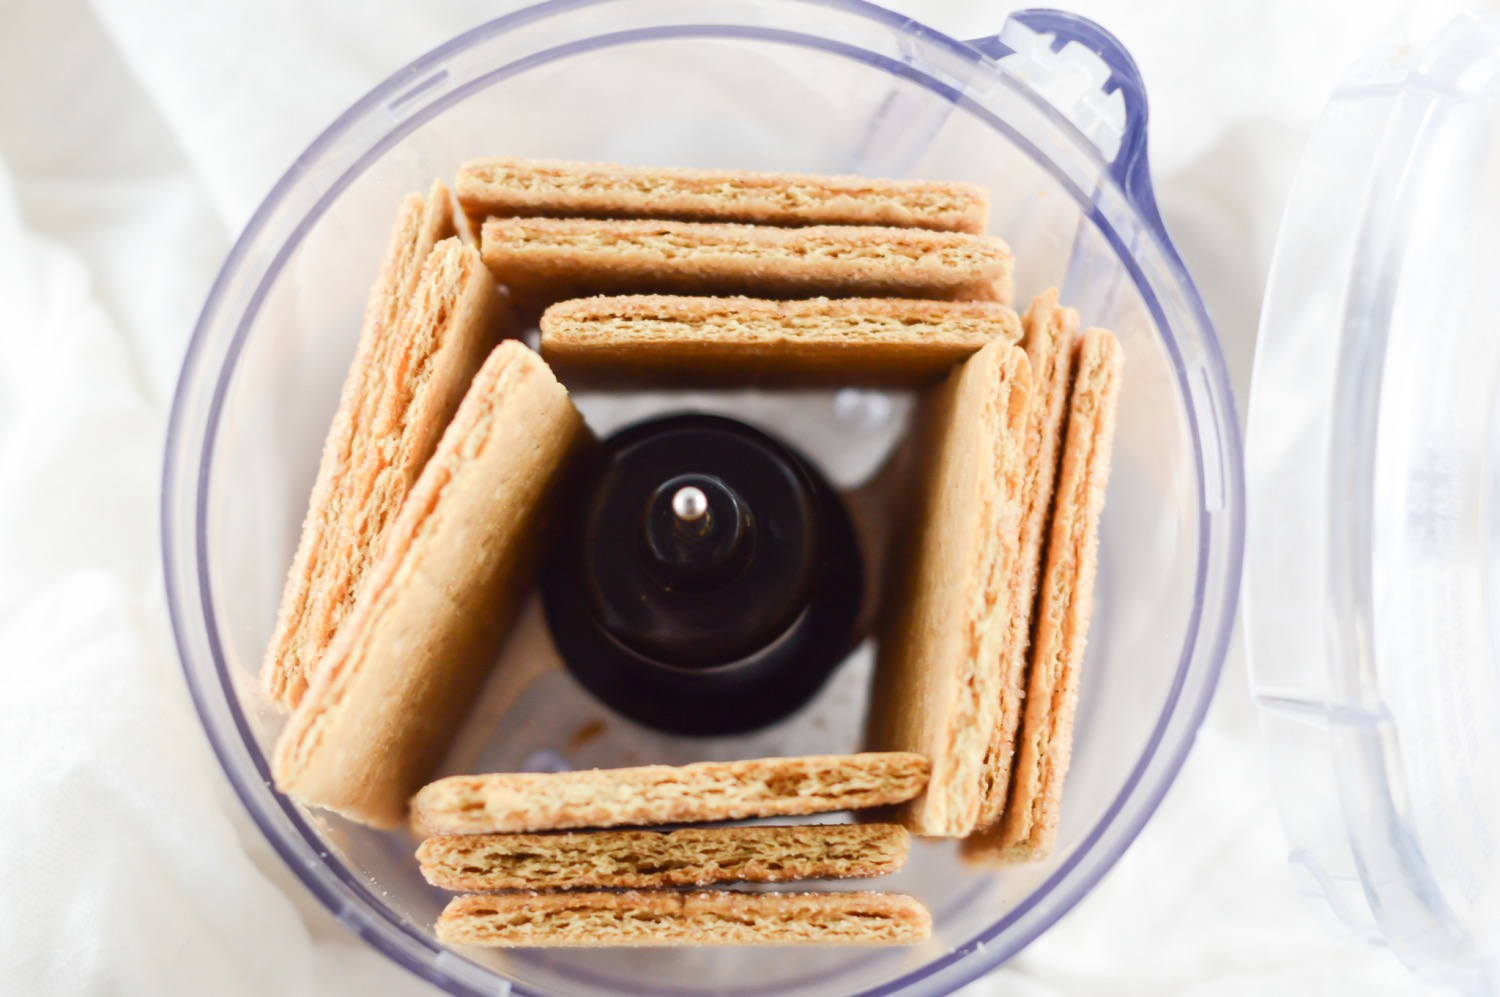 pulse the graham crackers in a food processor